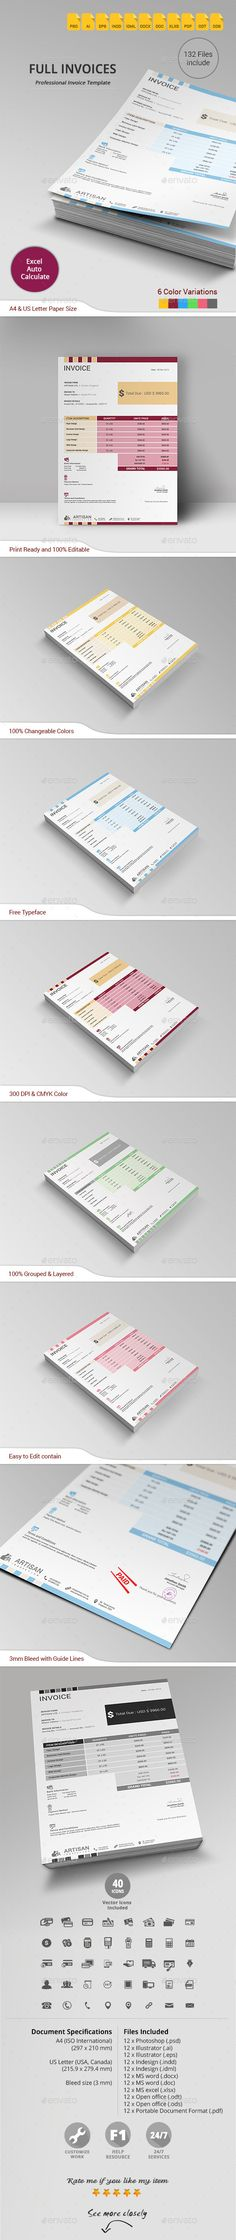 Simple and Clean Invoice Invoice template, Proposals and Photoshop - graphic design invoice sample